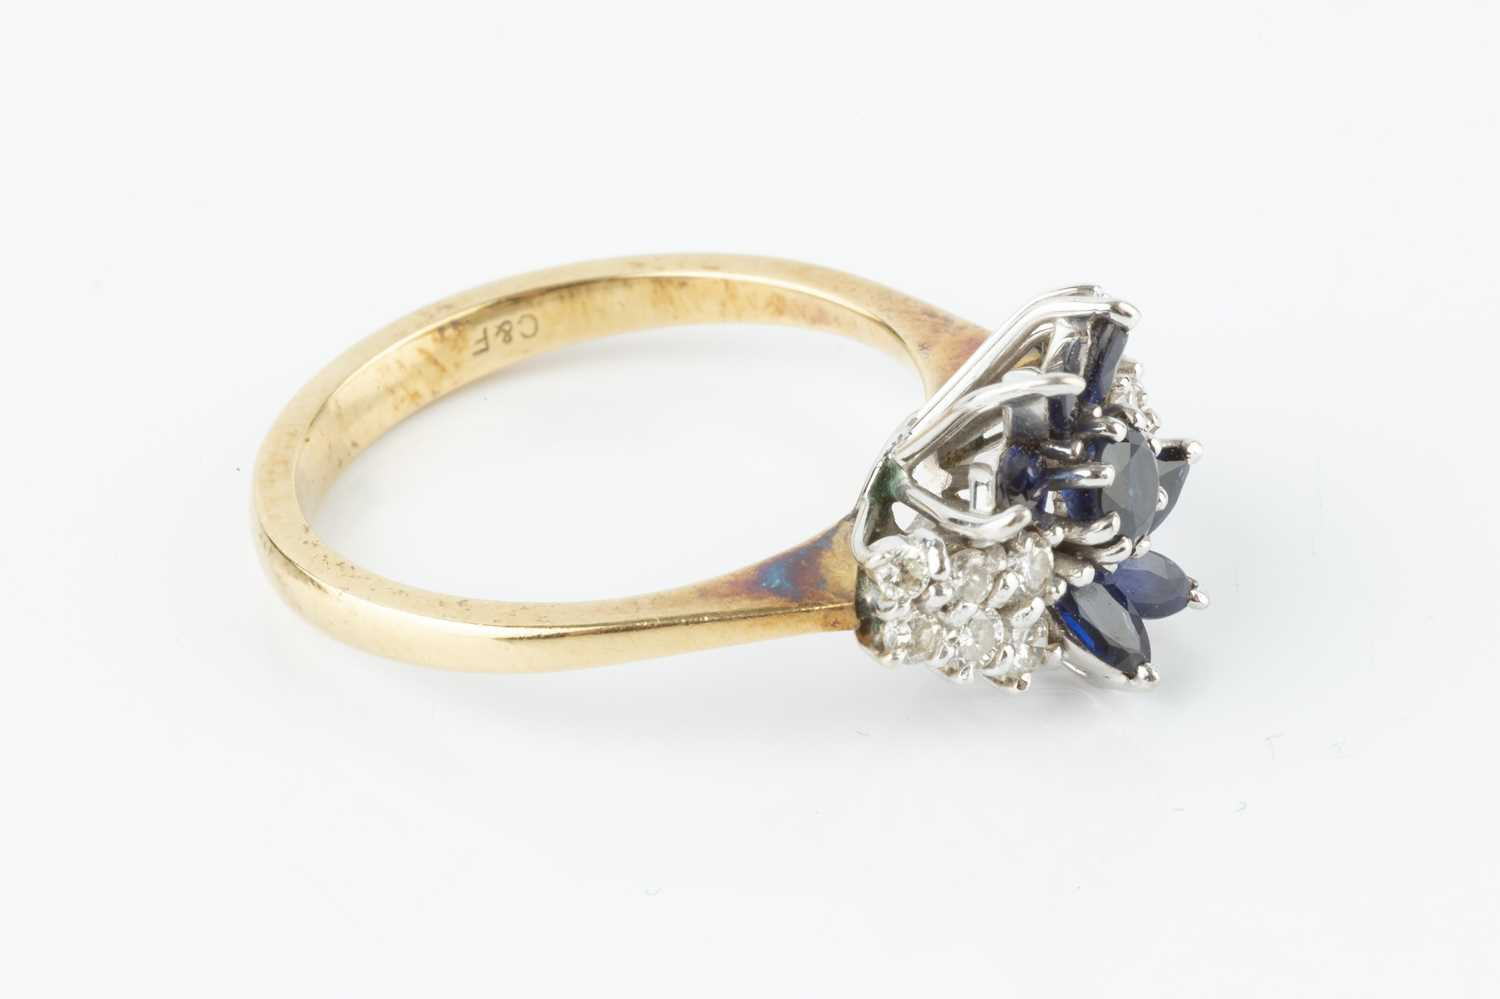 A sapphire and diamond cluster ring, designed as an abstract spray of circular mixed-cut and - Image 2 of 3